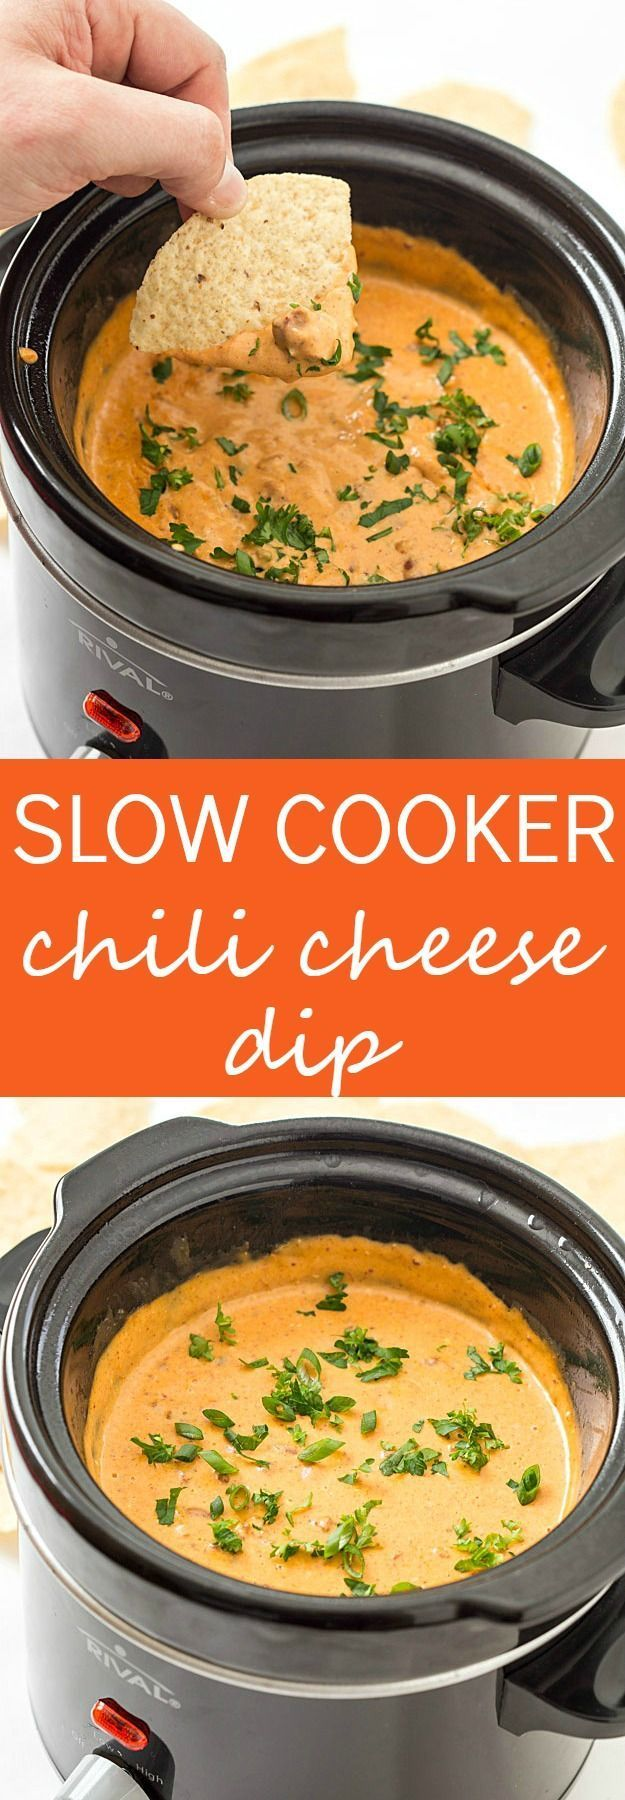 5-Ingredient Slow Cooker Chili Cheese Dip Recipe - Extra quick and easy with your slow cooker doing all the work. So creamy even without Velveeta. Perfect for parties! Doesn't harden as it cools! (Halloween Appetizers Crockpot)